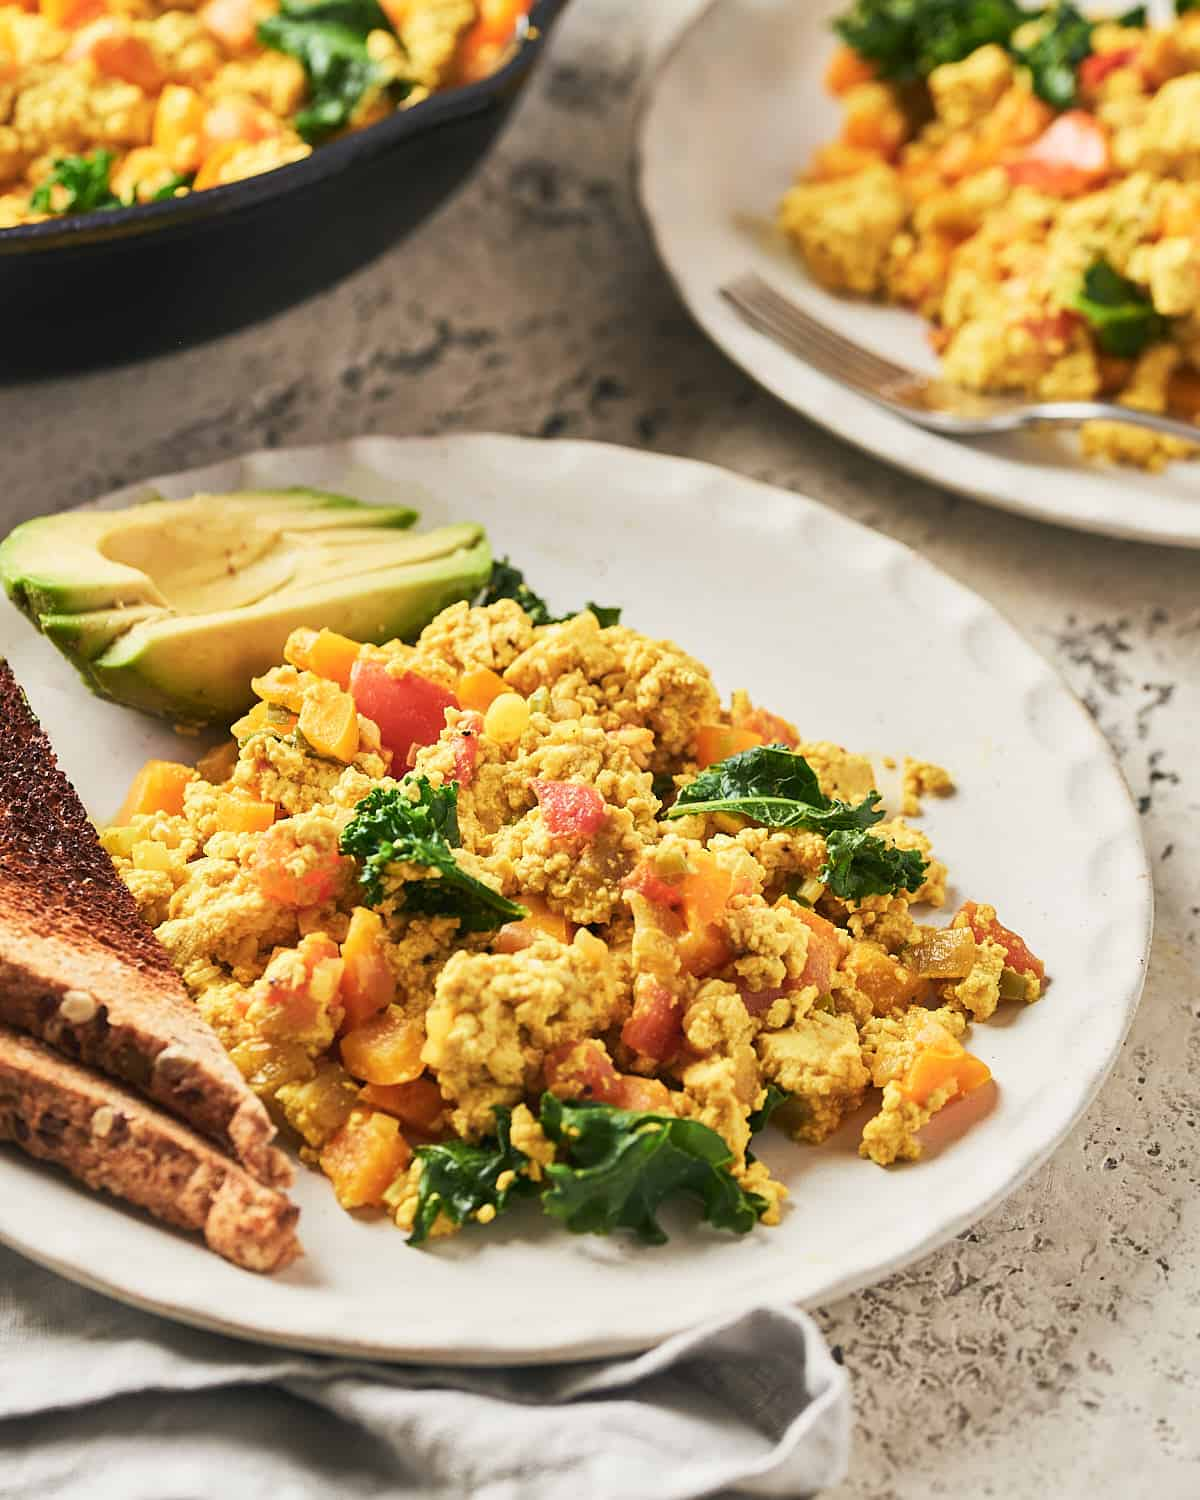 Side view of scrambled tofu on plate